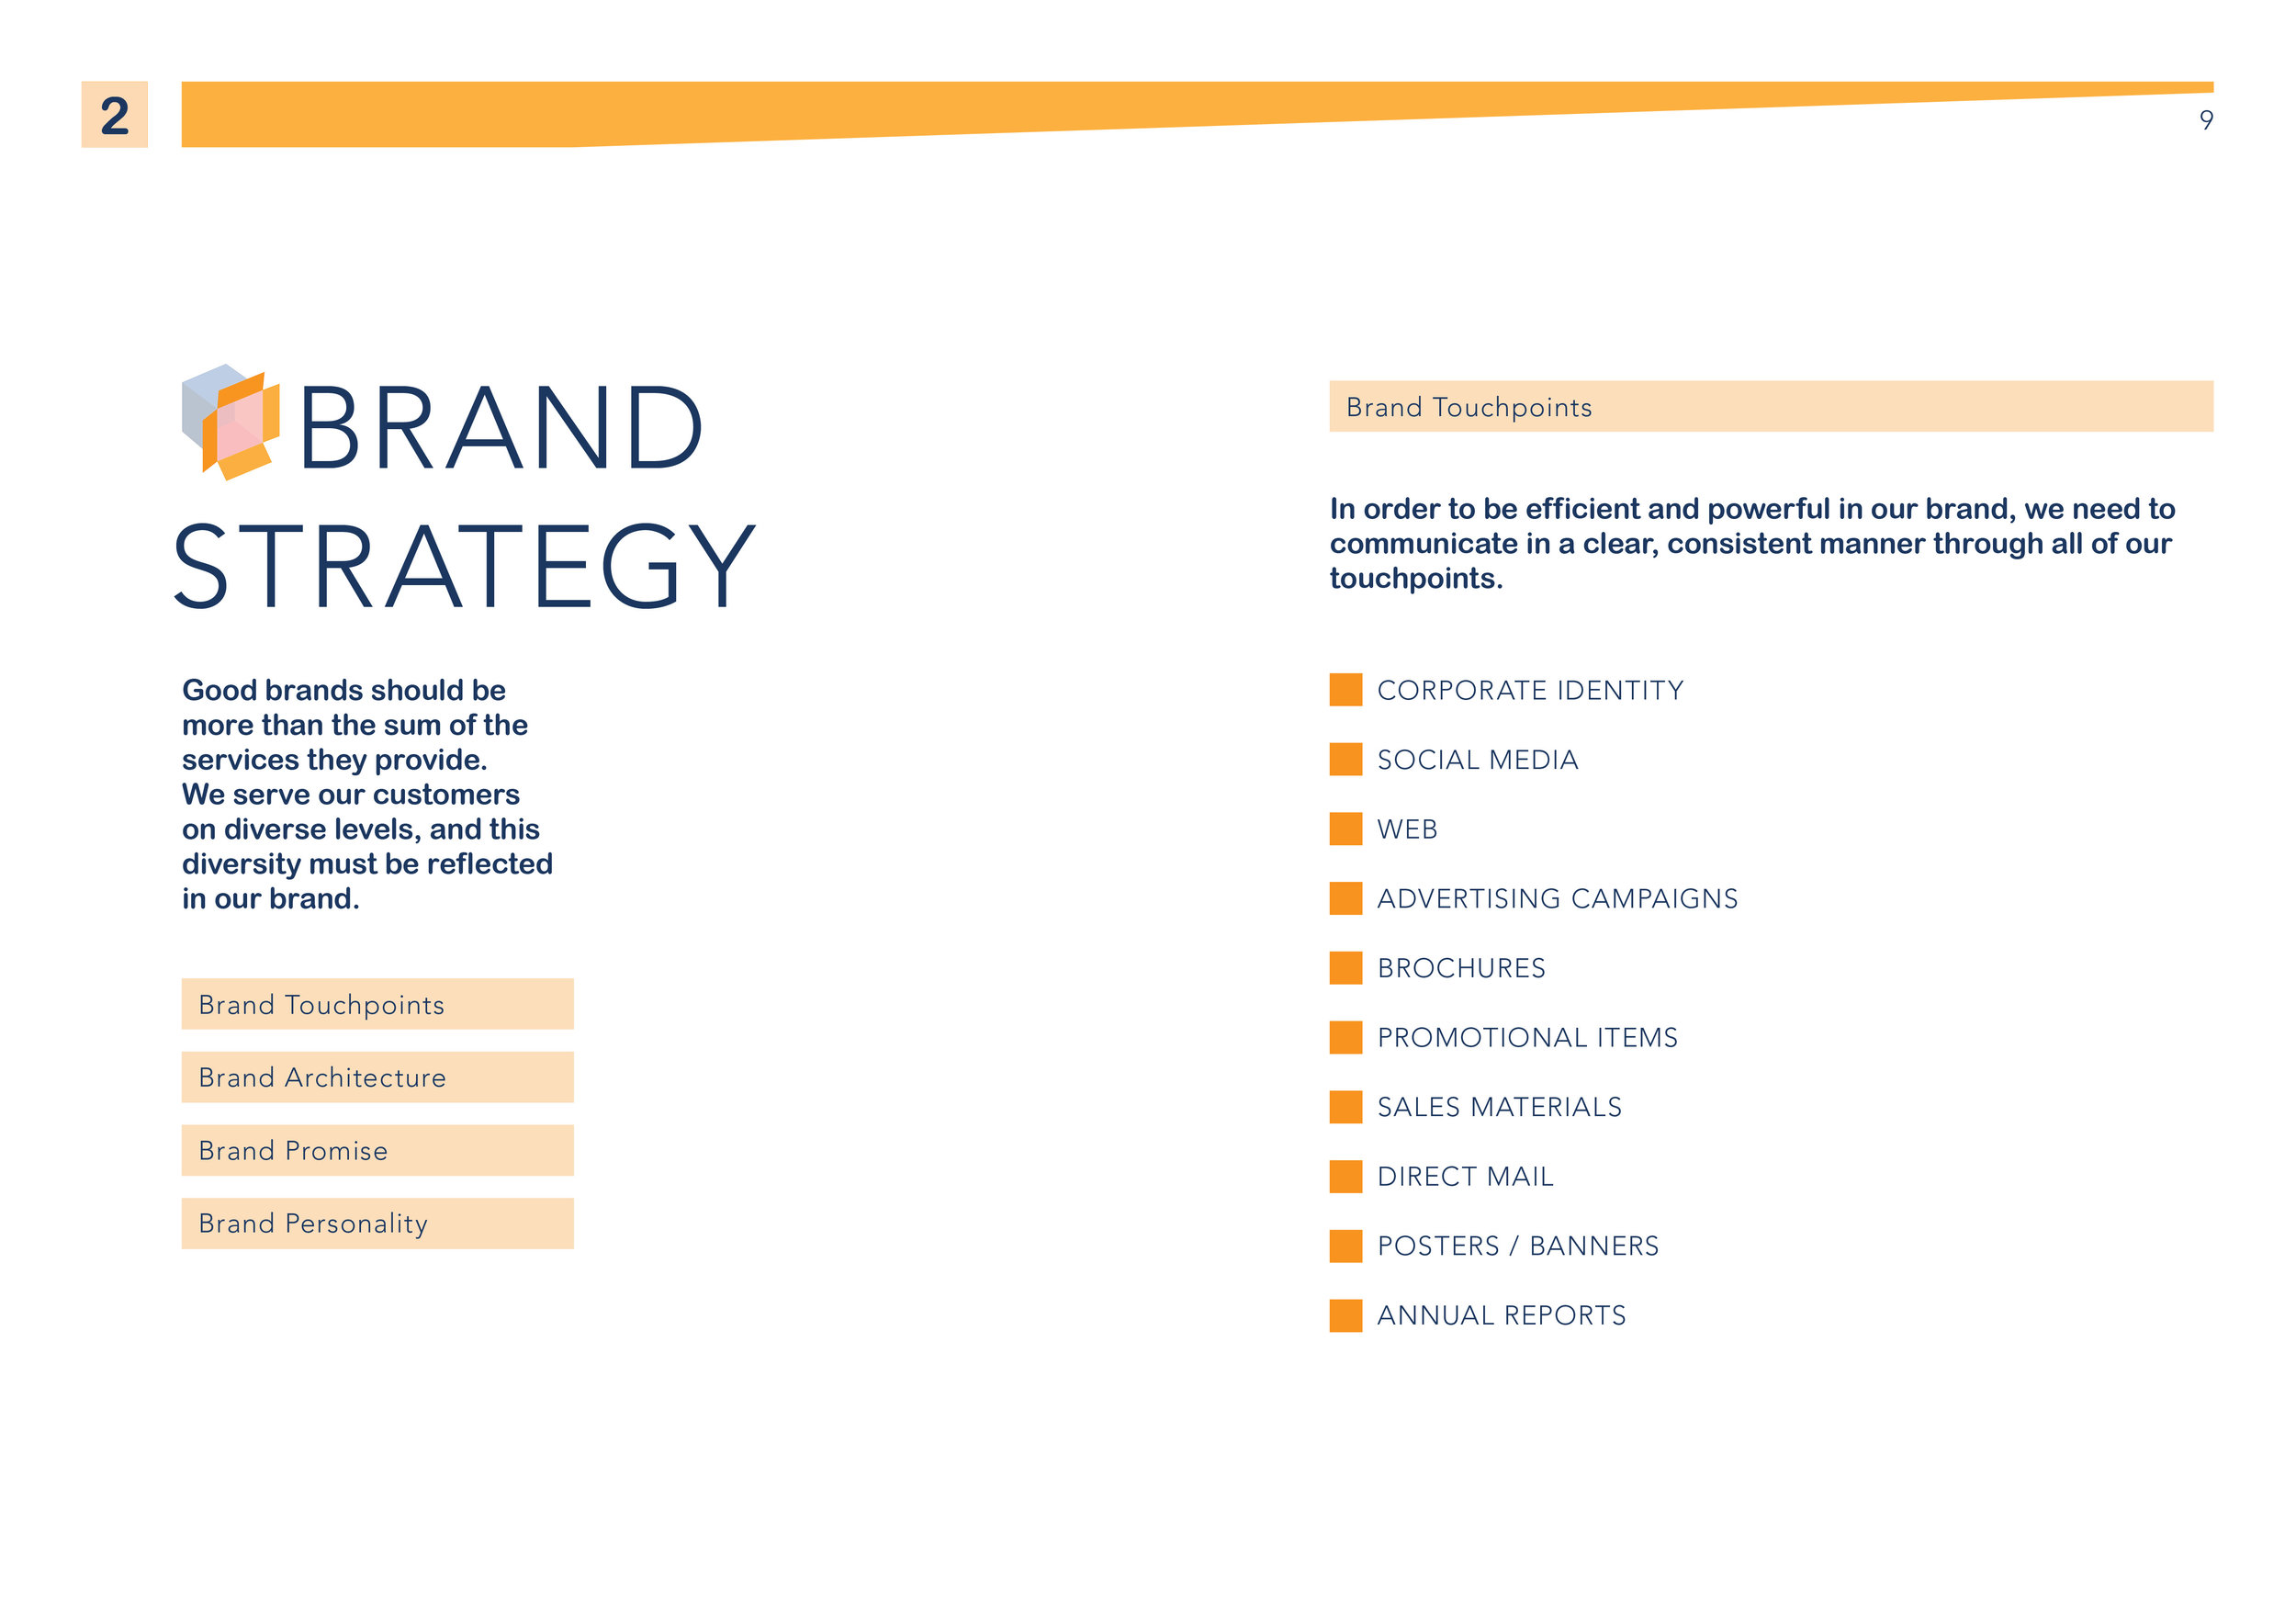 Unbox-it Brand Guidelines5.jpg